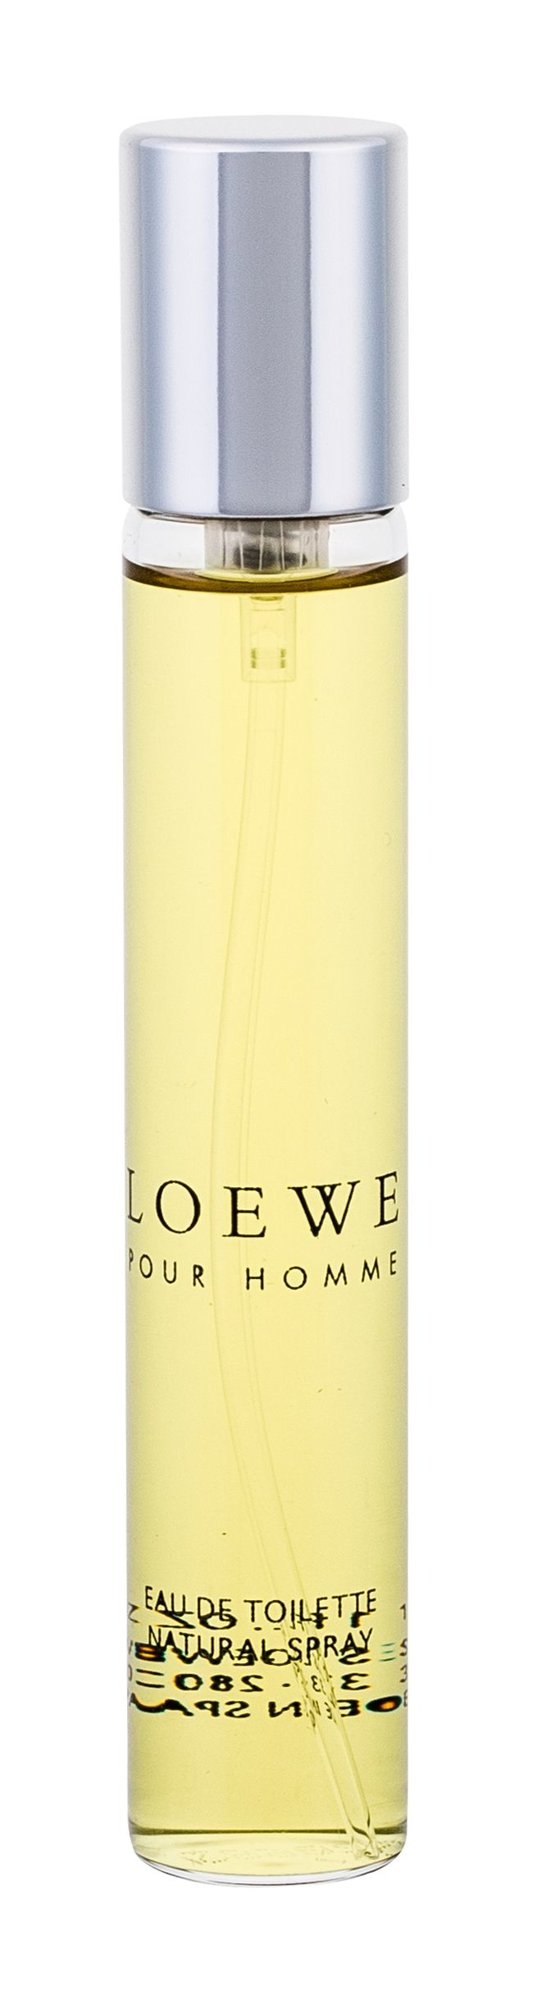 Loewe Pour Homme EDT 15ml